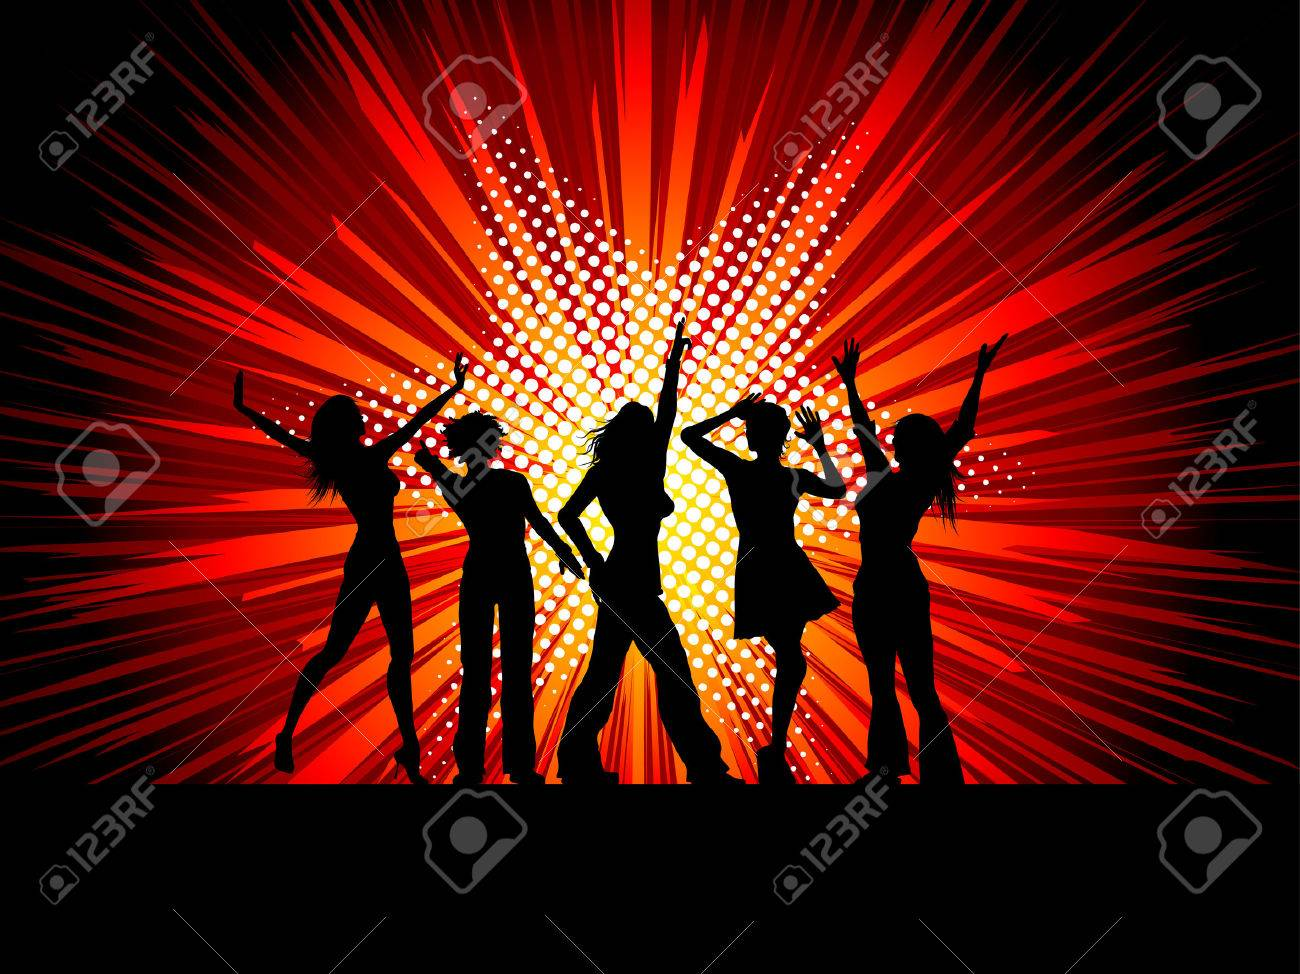 Silhouettes of female dancers on starburst background - 4644302